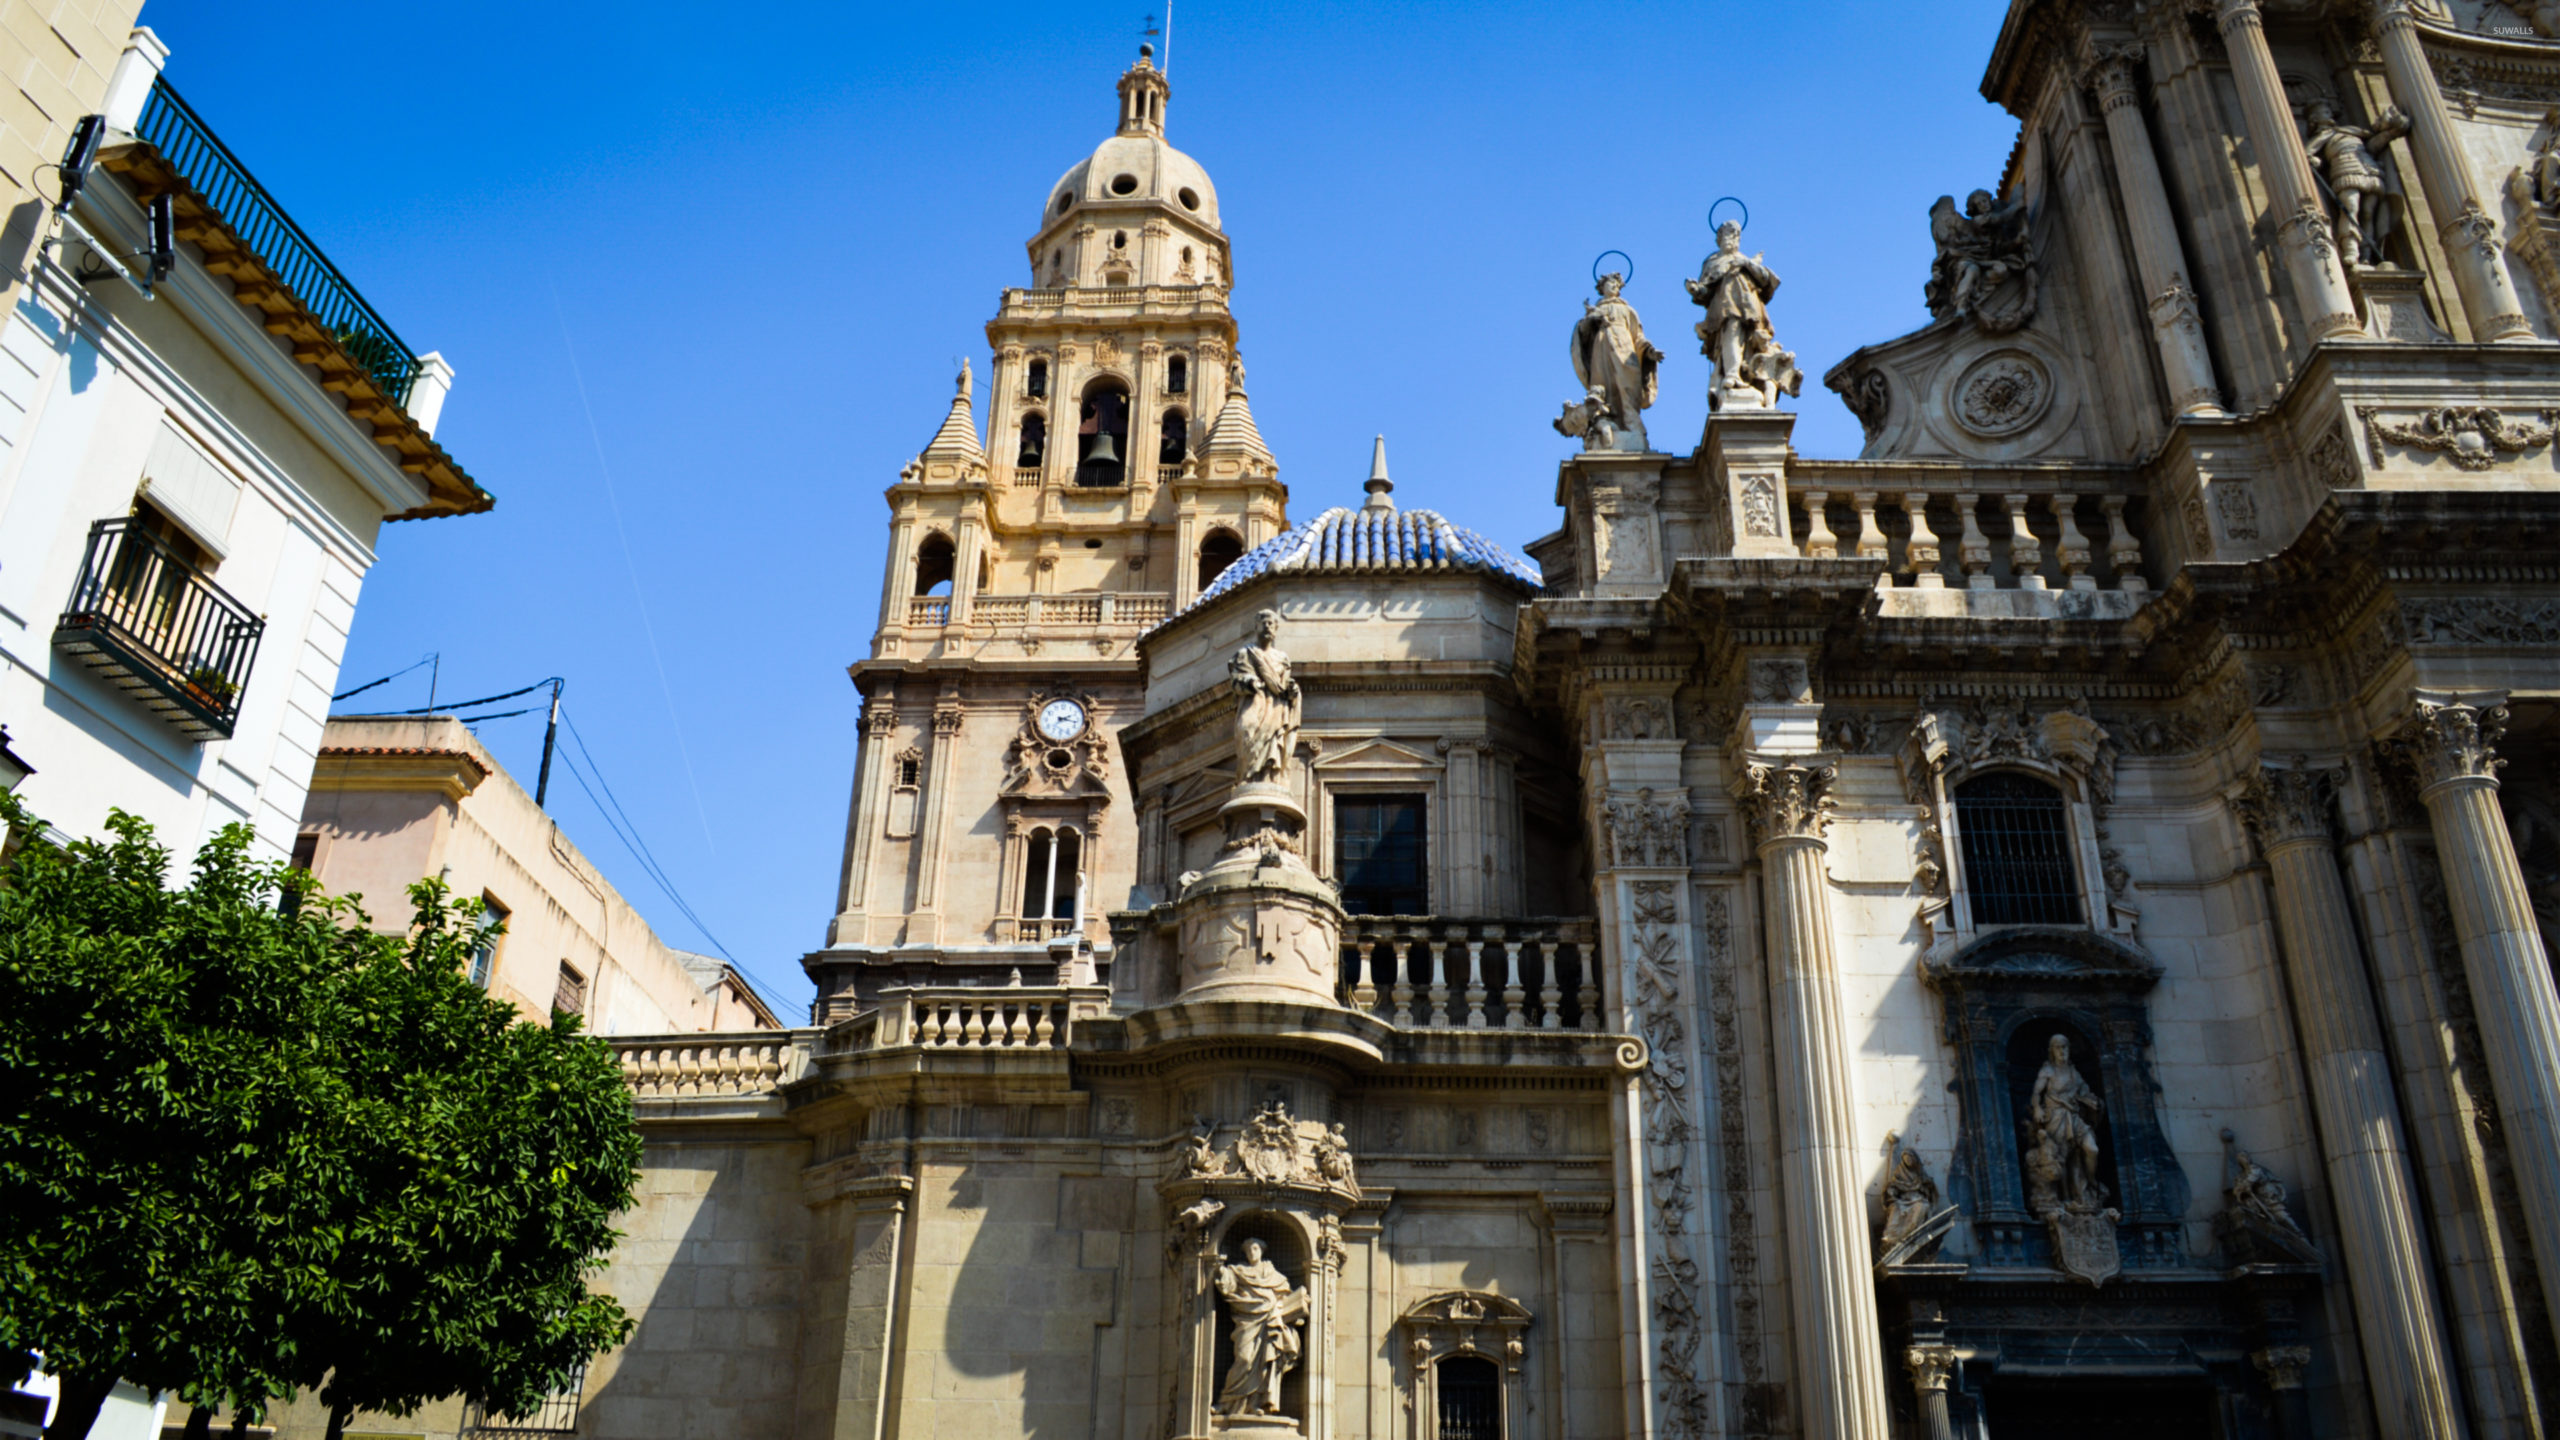 Cathedral-Church-Of-Saint-Mary-50656-3840×2160-Wallpaper